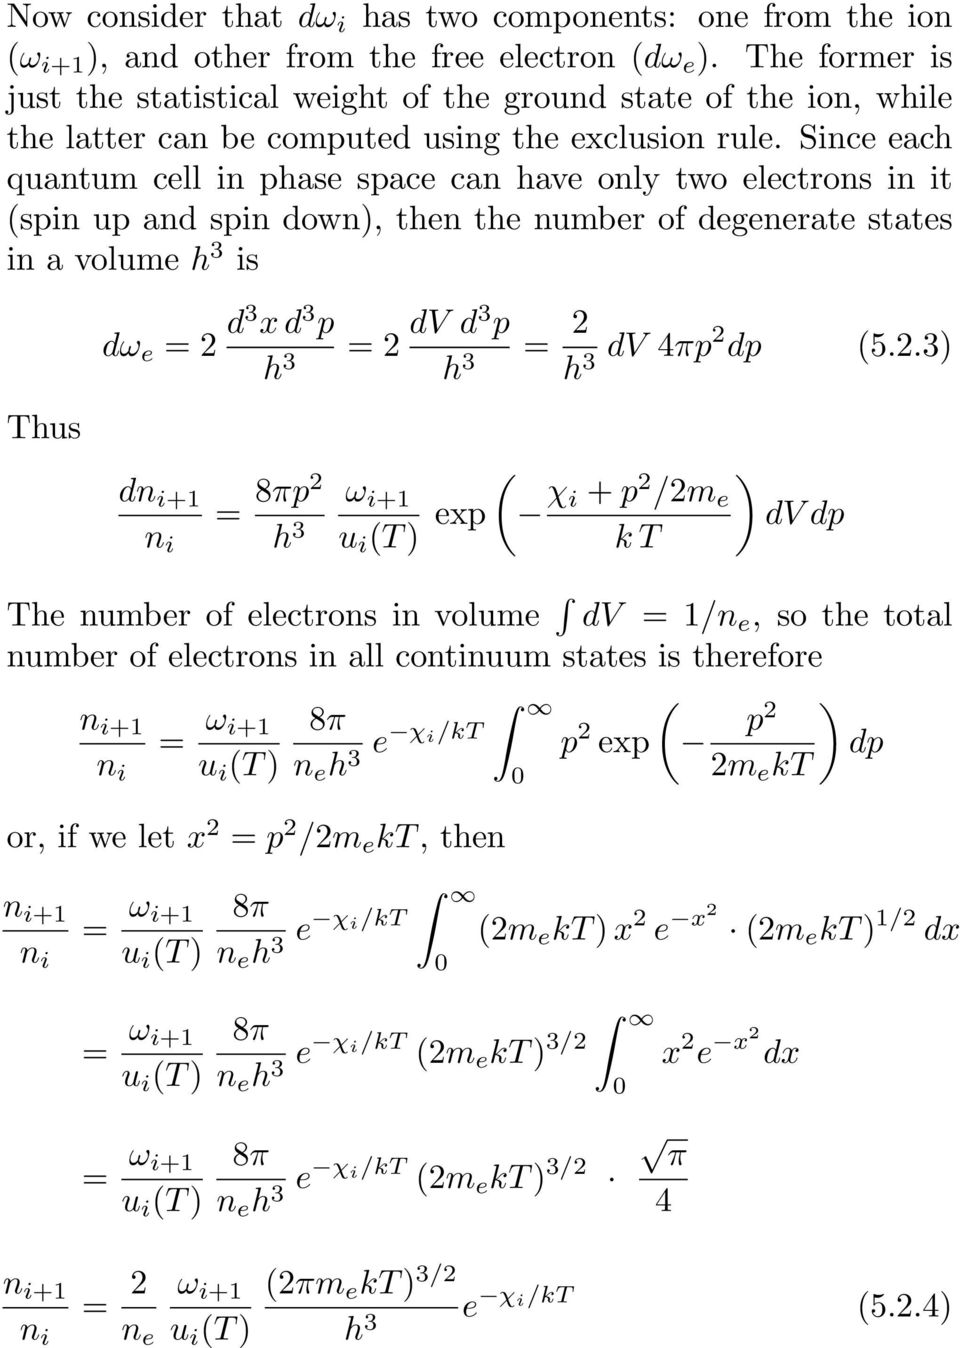 Snce each quantum cell n phase space can have only two electrons t spn up and spn down), then the number of degenerate states n a volume h 3 s Thus dω e = 2 d3 x d 3 p h 3 d+1 = 2 dv d3 p h 3 = 2 h 3